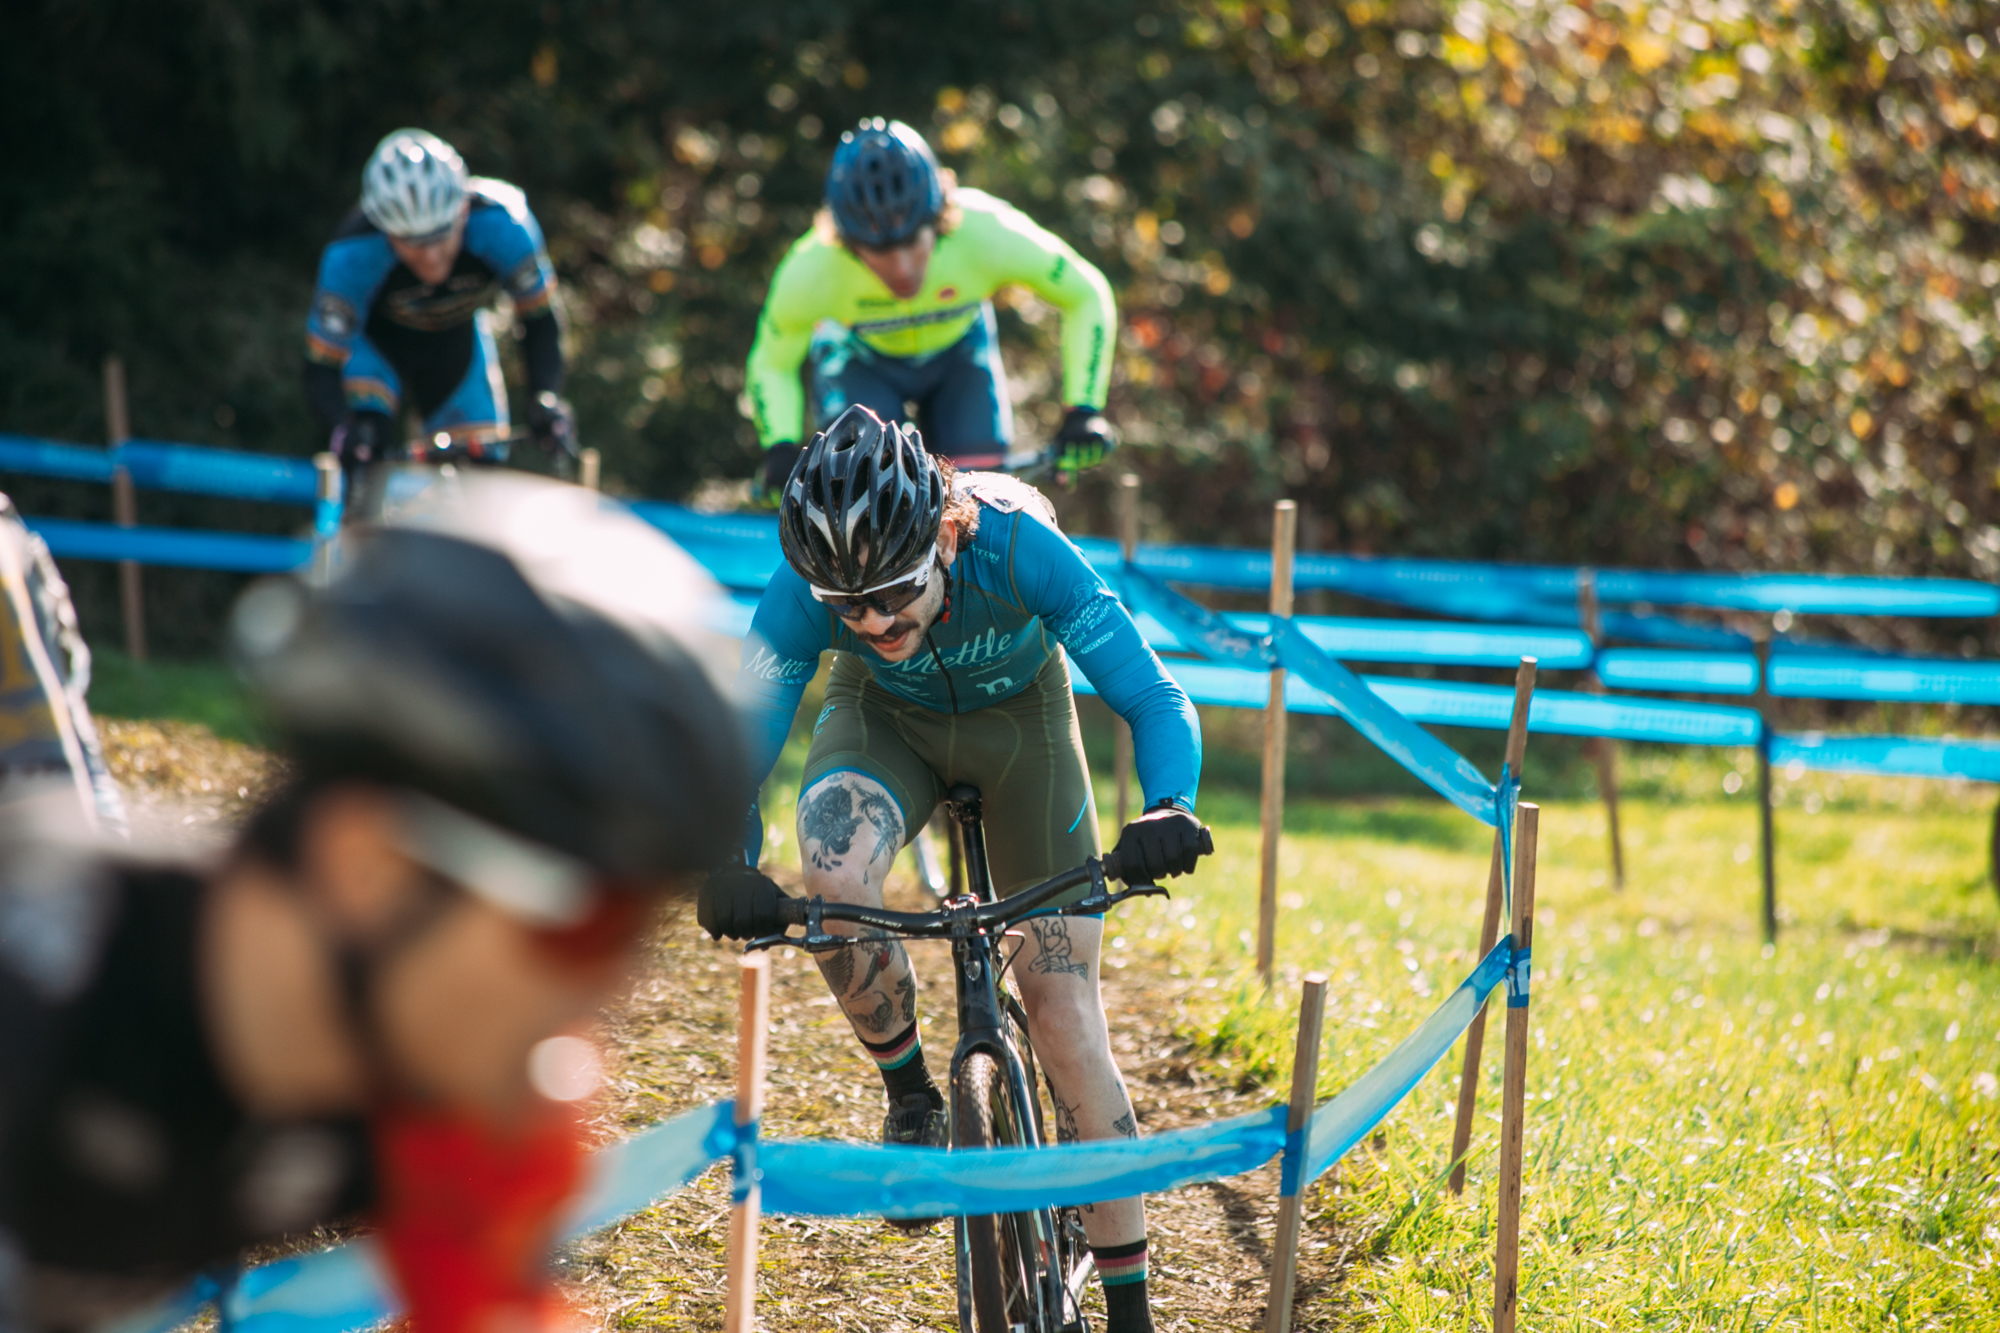 Cyclocross18_CCCX_RainierHS-89-mettlecycling.jpg